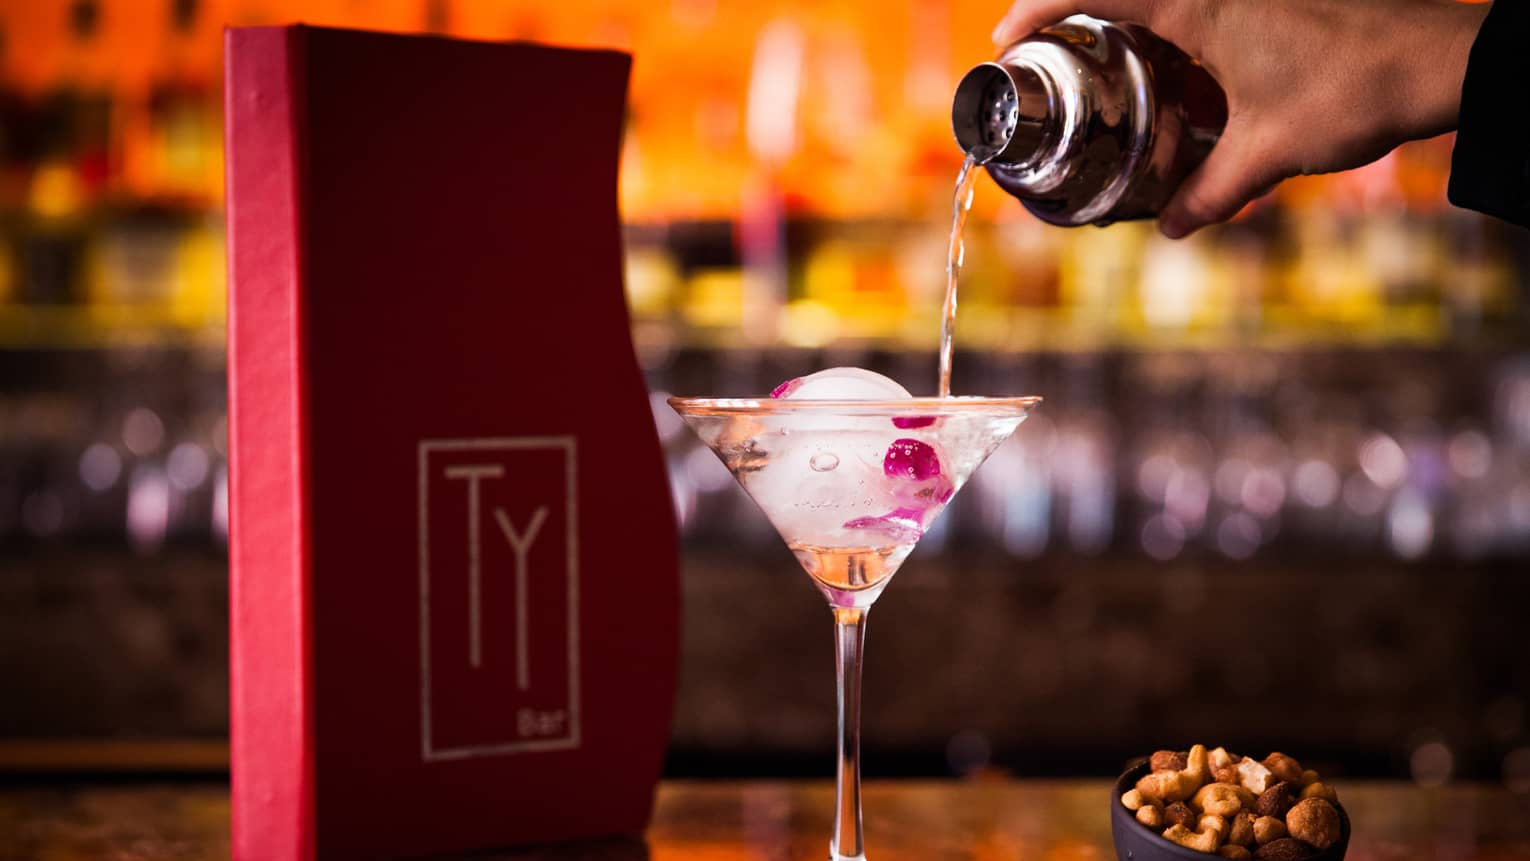 Red Ty Lounge menu on bar, bartender pours liquor into tall martini glass